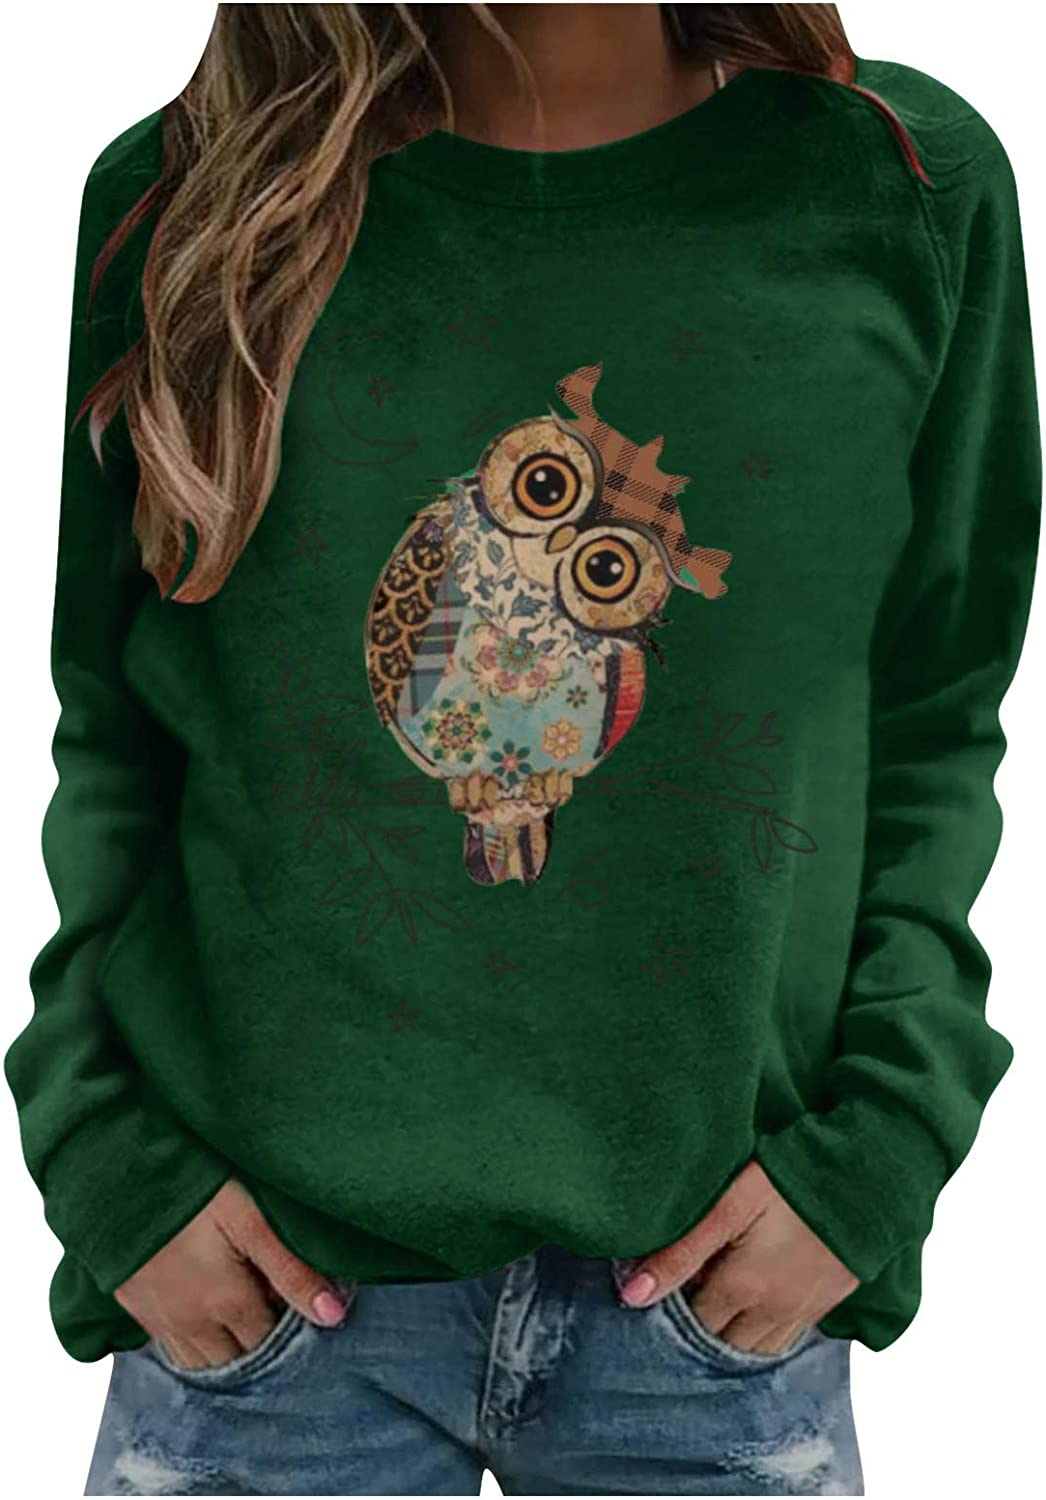 Women Cute Graphic Sweatshirt Funny Owl Print Tops Big Size Round Neck Blouse Long Sleeve Casual Pullover